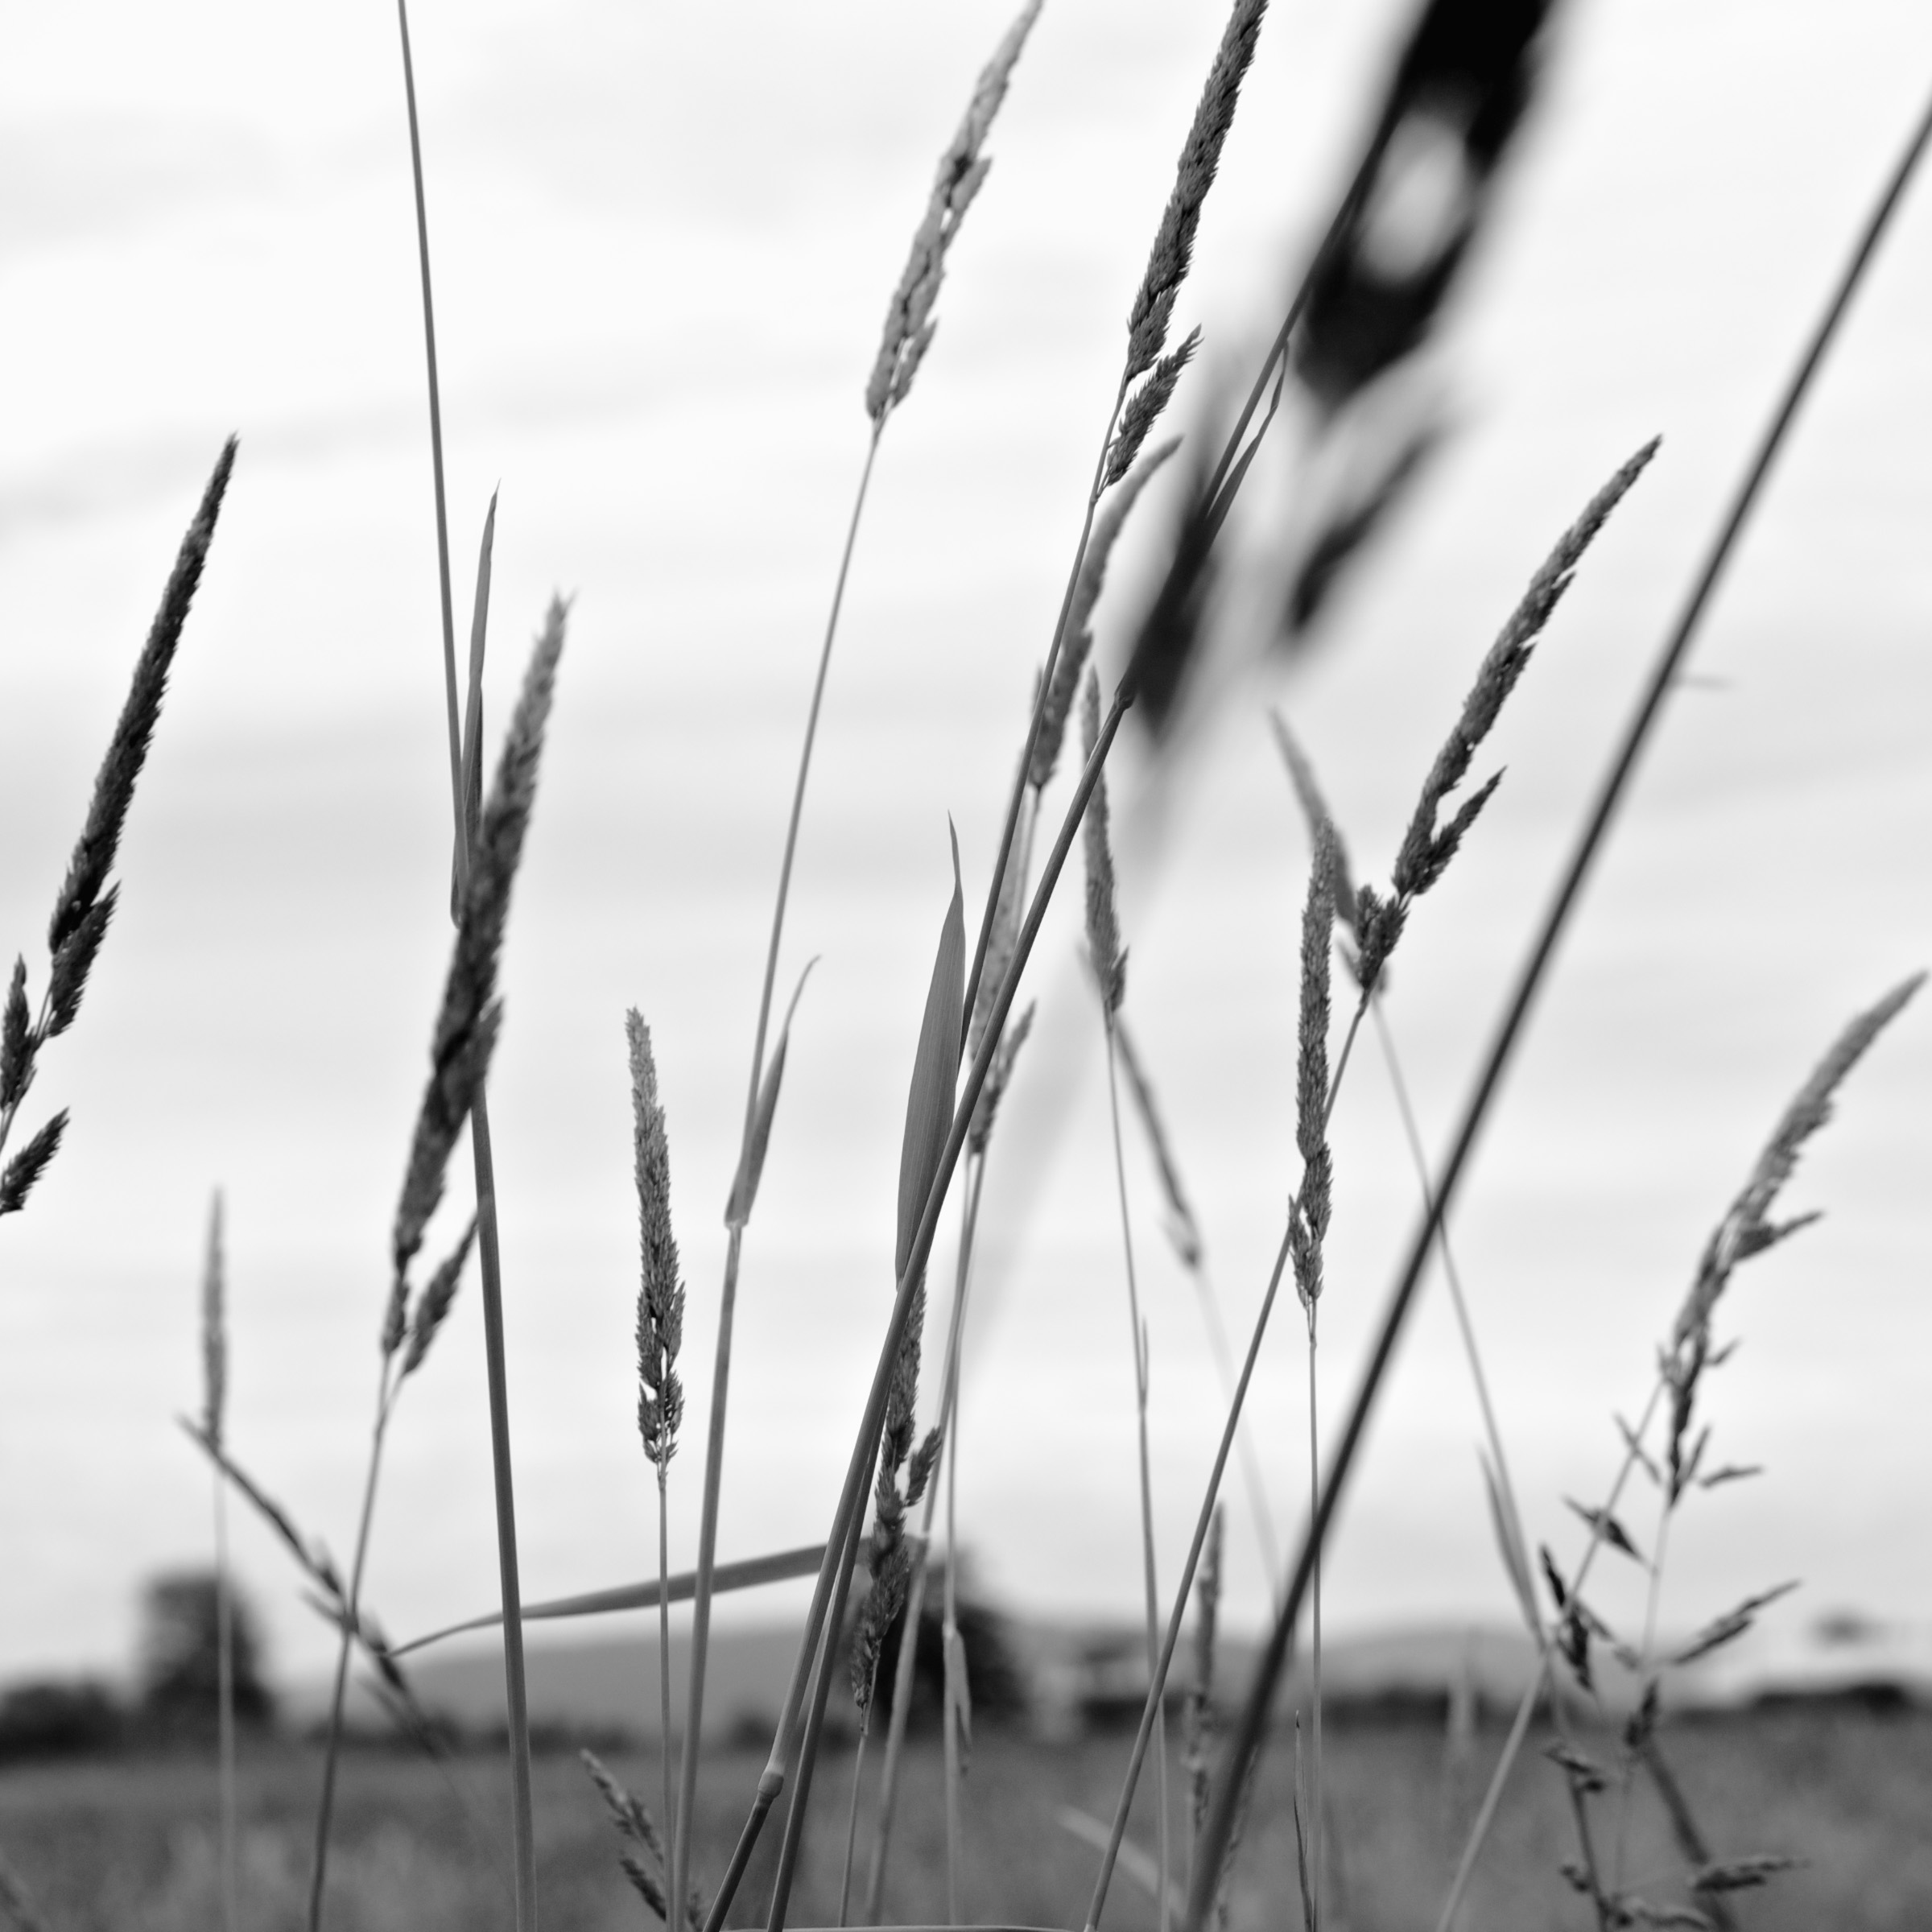 Wind Moves the Grasses